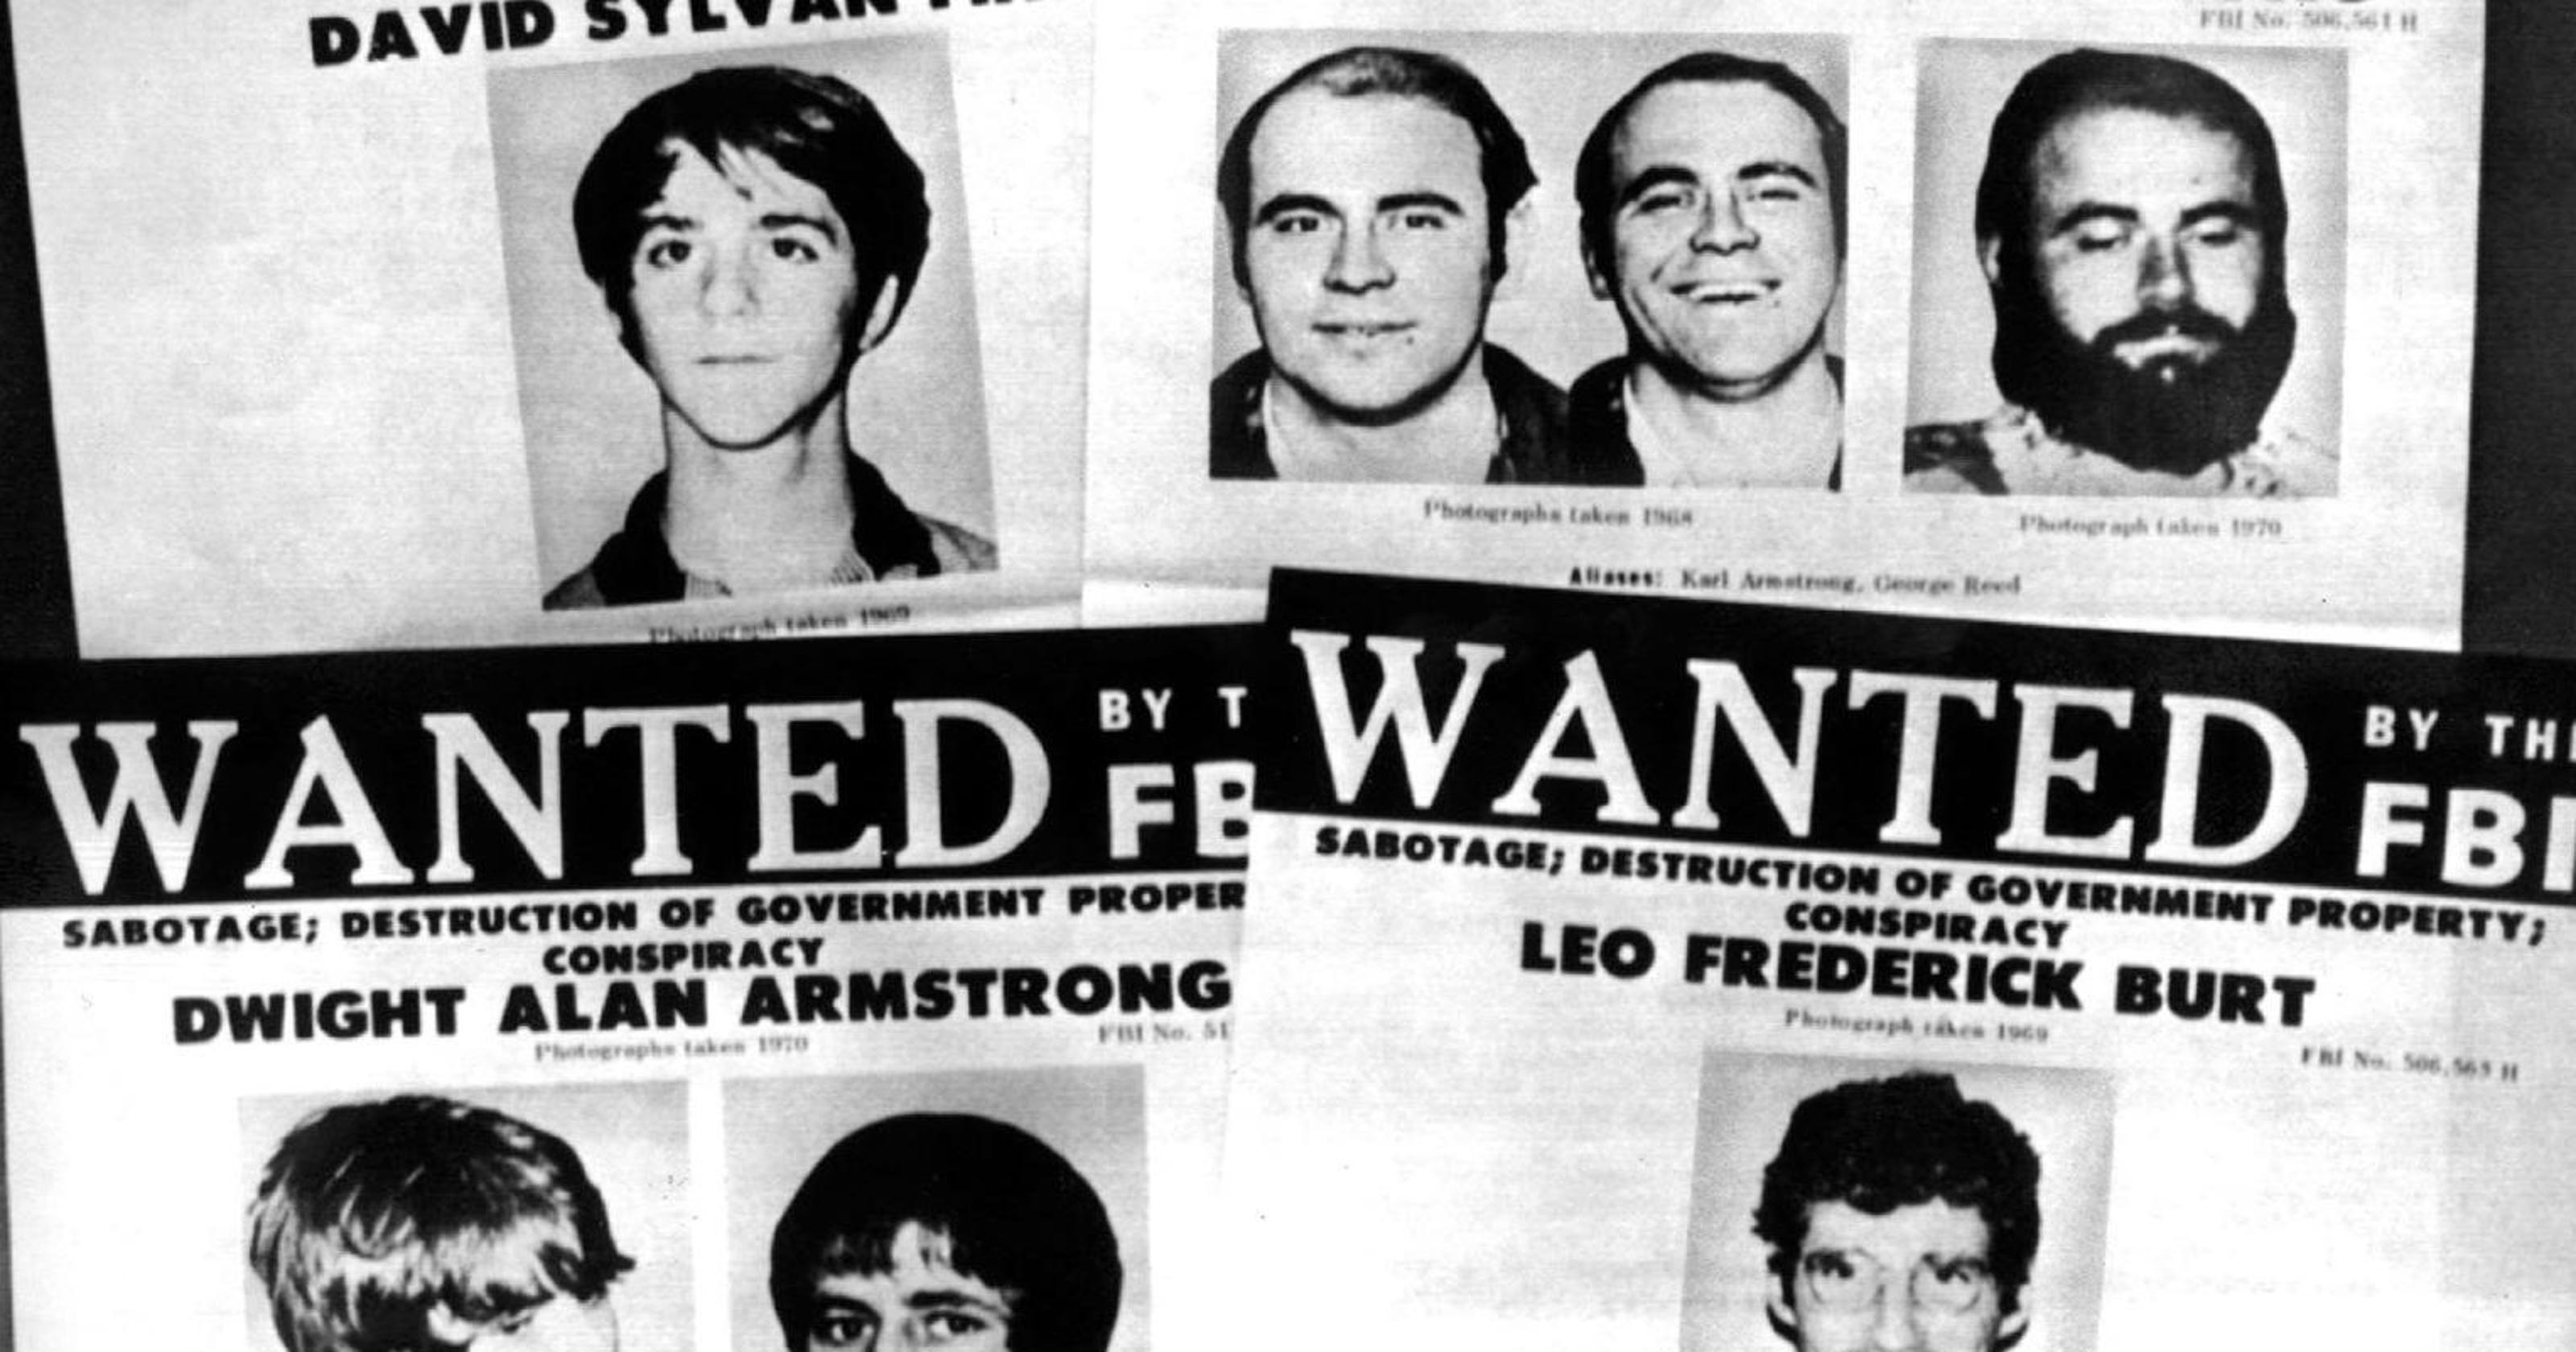 Jim Stingl: Wisconsin's many ties to Most Wanted list